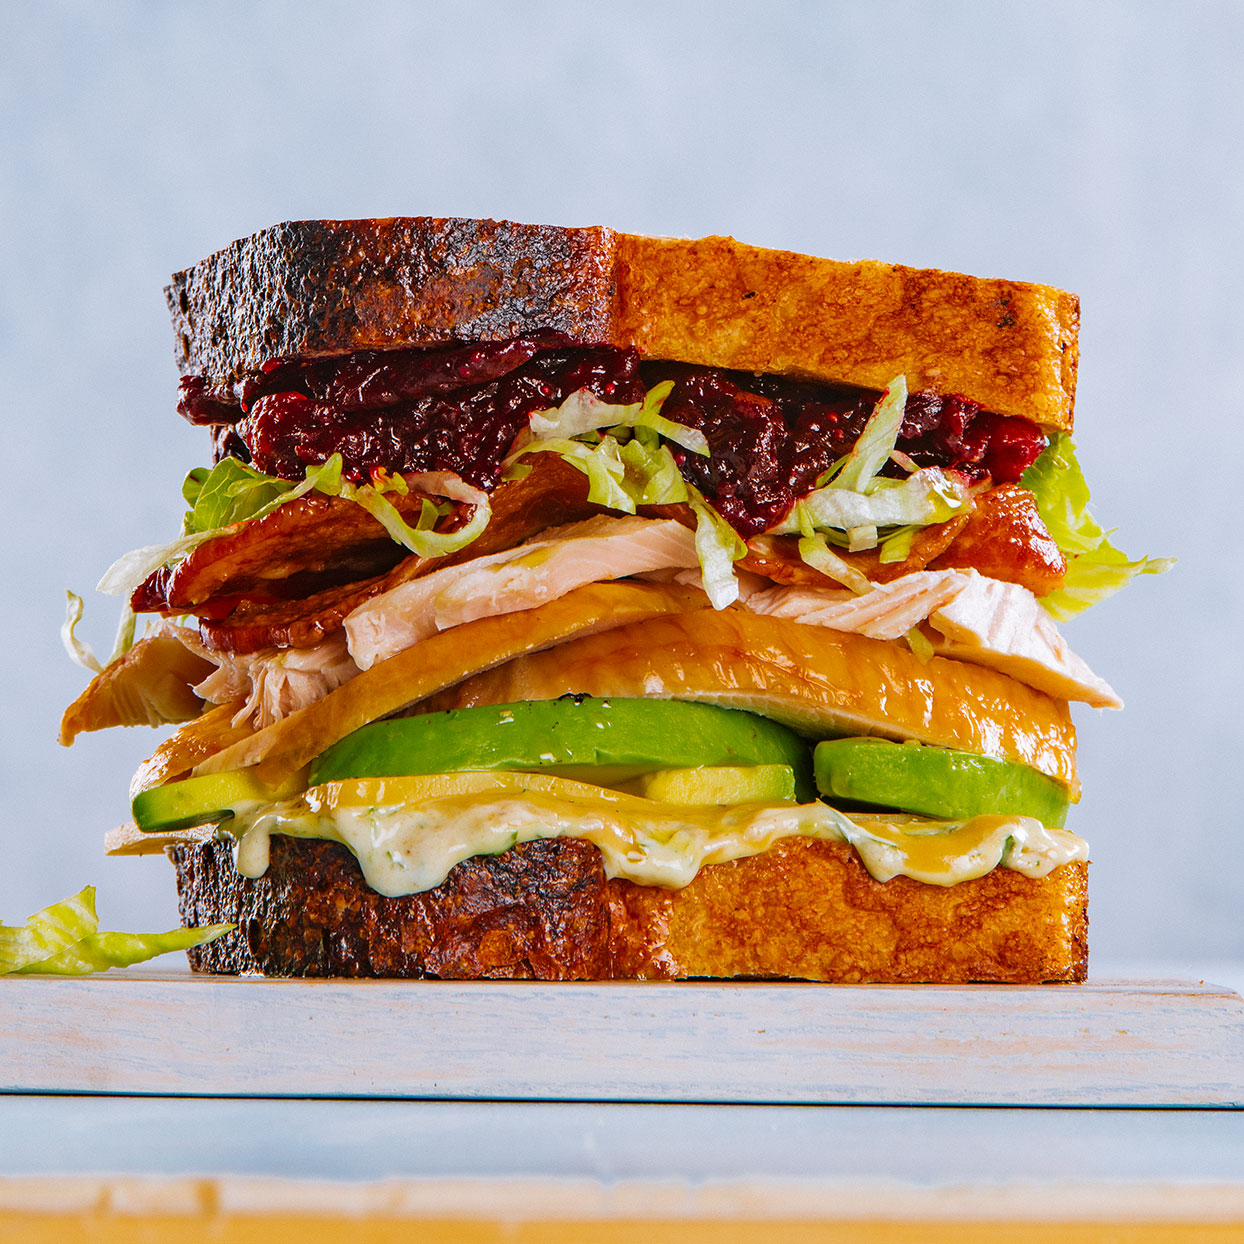 After Thanksgiving, we cannot get enough leftover turkey recipes—and this healthy turkey avocado sandwich will help you use up Thanksgiving leftovers and more. If you really want to do this sandwich up, chef Hugh Acheson suggests searing a slice of stuffing or bread pudding until it's nice and crispy and putting it between the turkey and avocado.